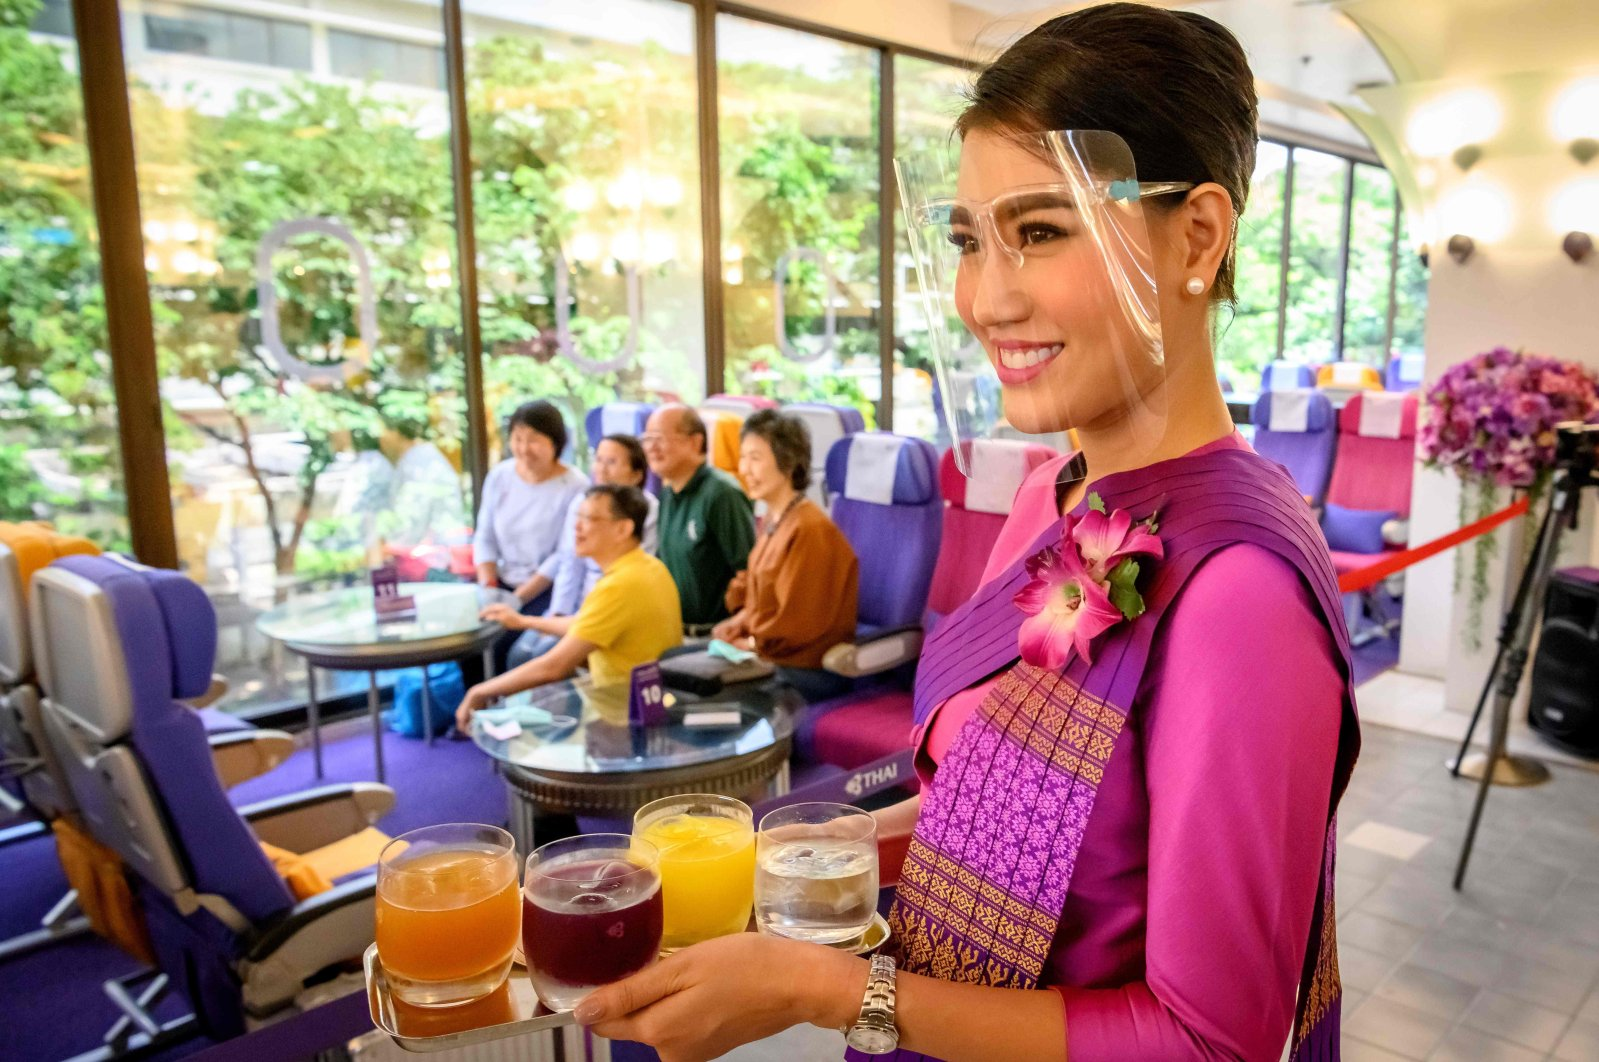 This picture taken on September 10, 2020 shows a Thai Airways flight attendant wearing a face shield as she serves drinks at a pop-up air-plane-themed restaurant at the airline's headquarters in Bangkok. (AFP Photo)